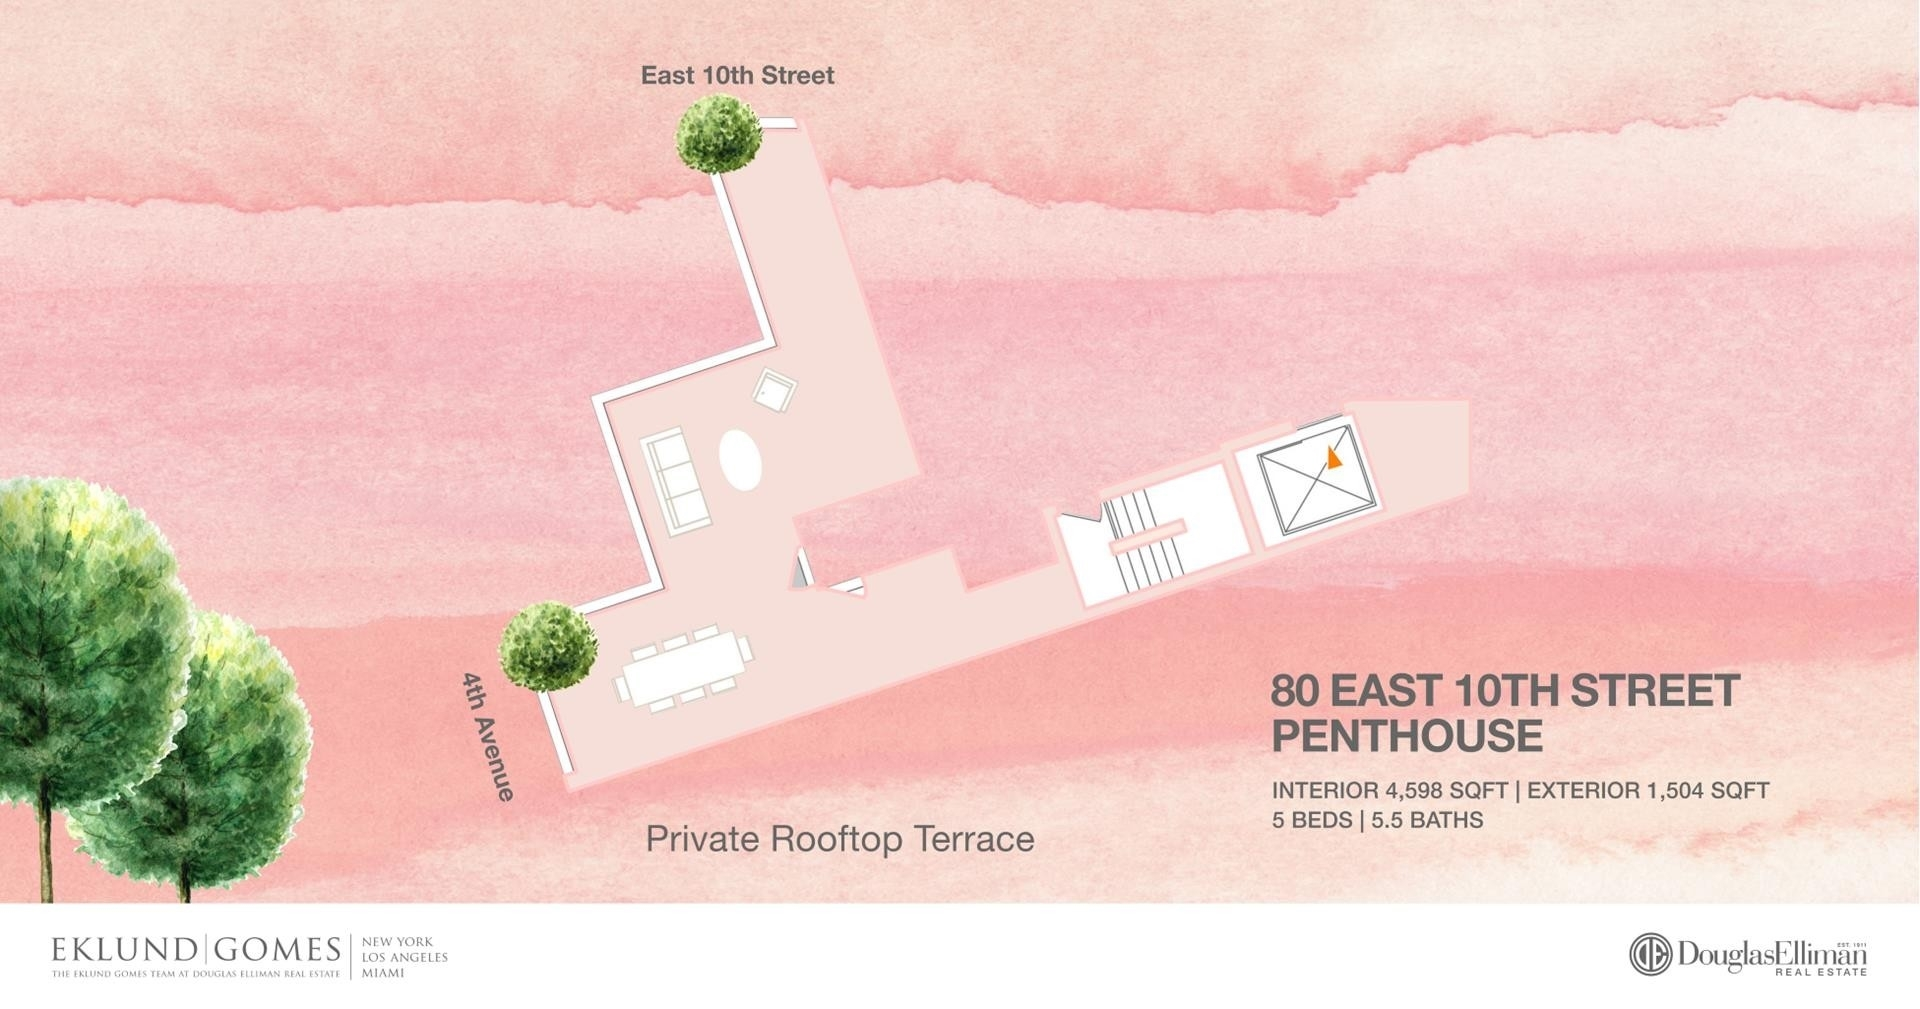 3. Condominiums for Sale at 80 E 10TH ST , PH East Village, New York, NY 10003